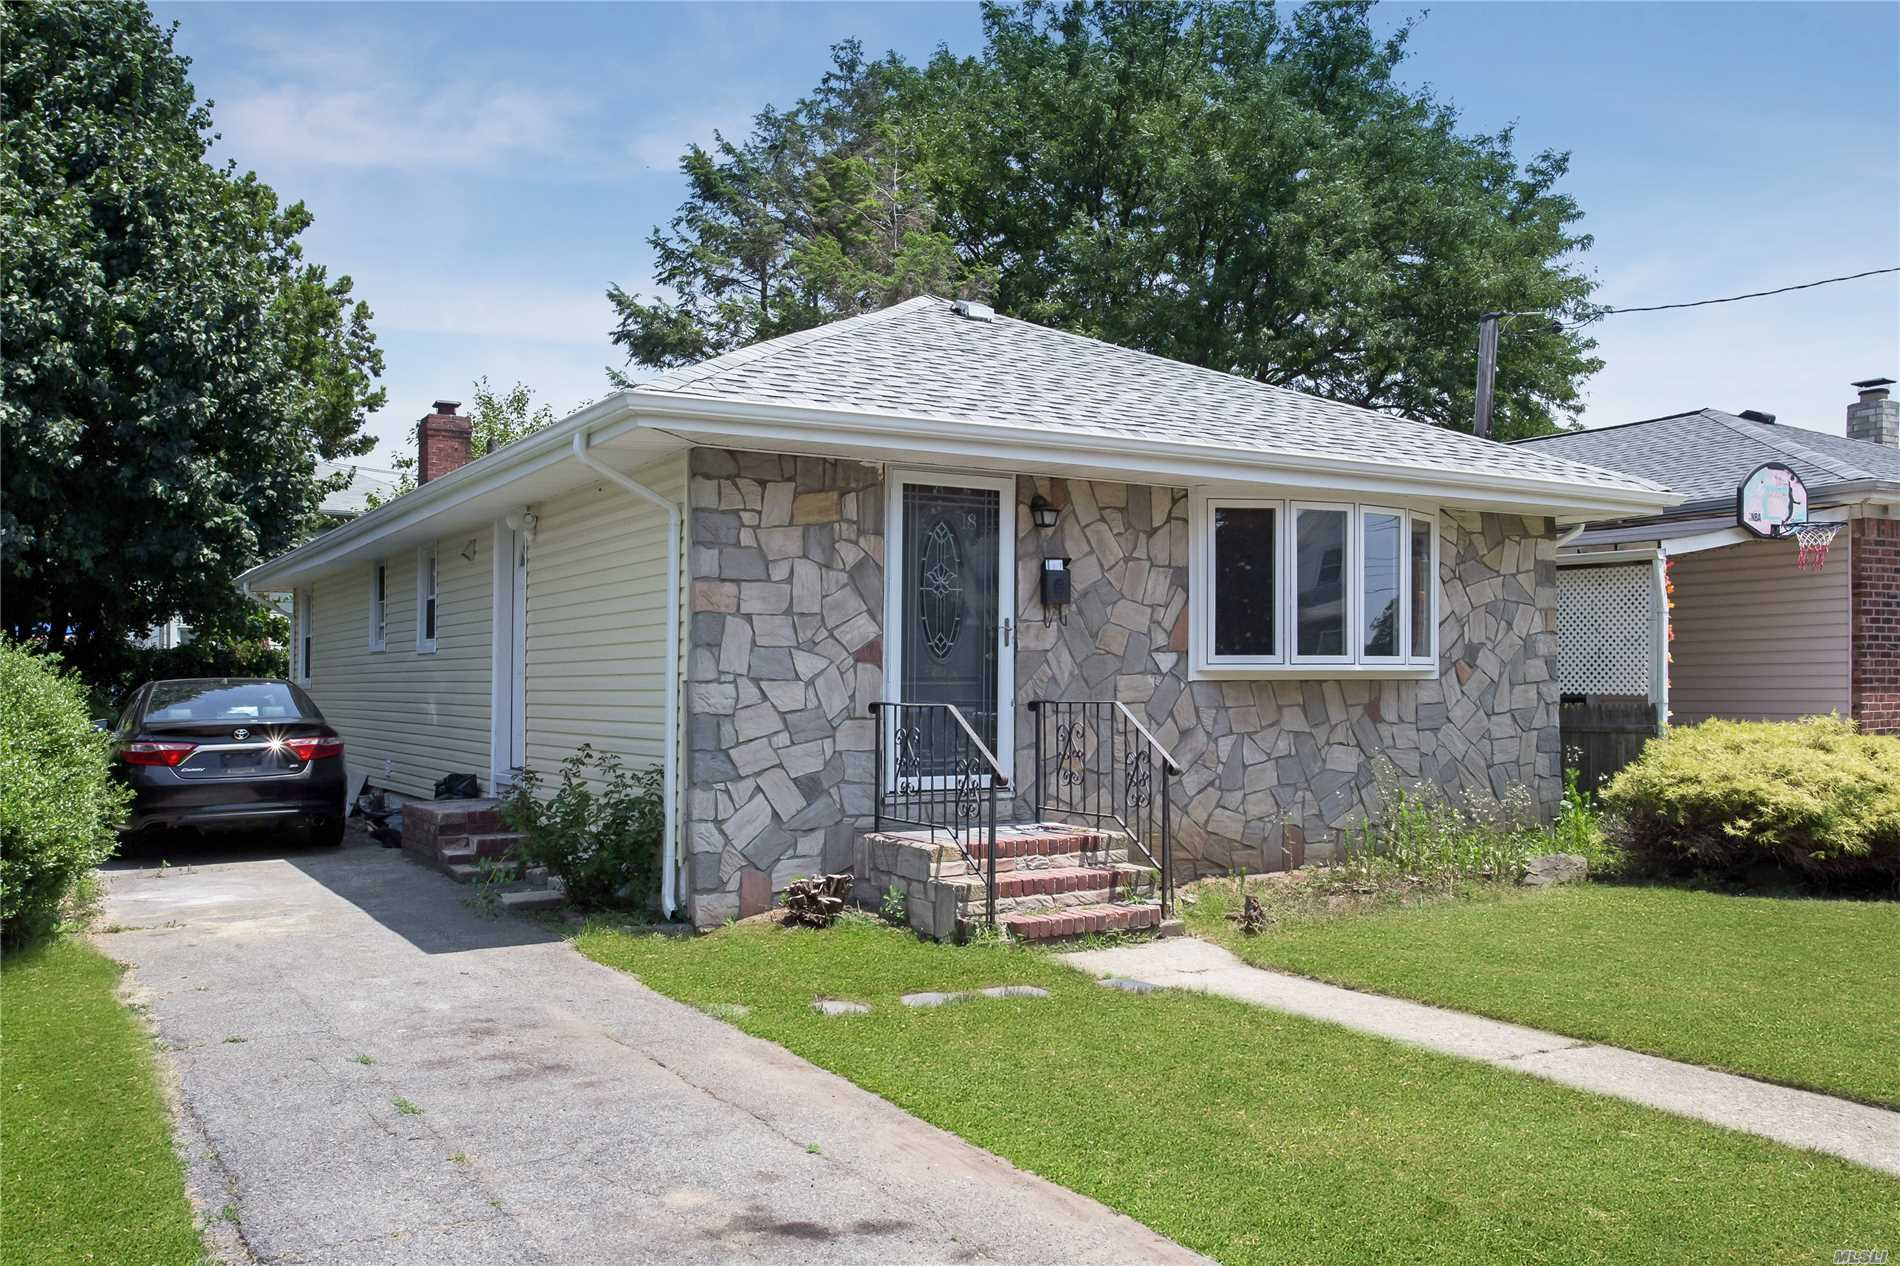 Recently Renovated Ranch Featuring 3 Beds, 2 Full Baths (1) Whirlpool Tub. New Hardwood Floors. Led High Hats Throughout. Energy Efficient Gas Converted Furnace. Upgraded Electrical 200 Amp . All New Windows. Full Finished Basement W/ Ose. Not A Flip, No Cheap Materials Here.